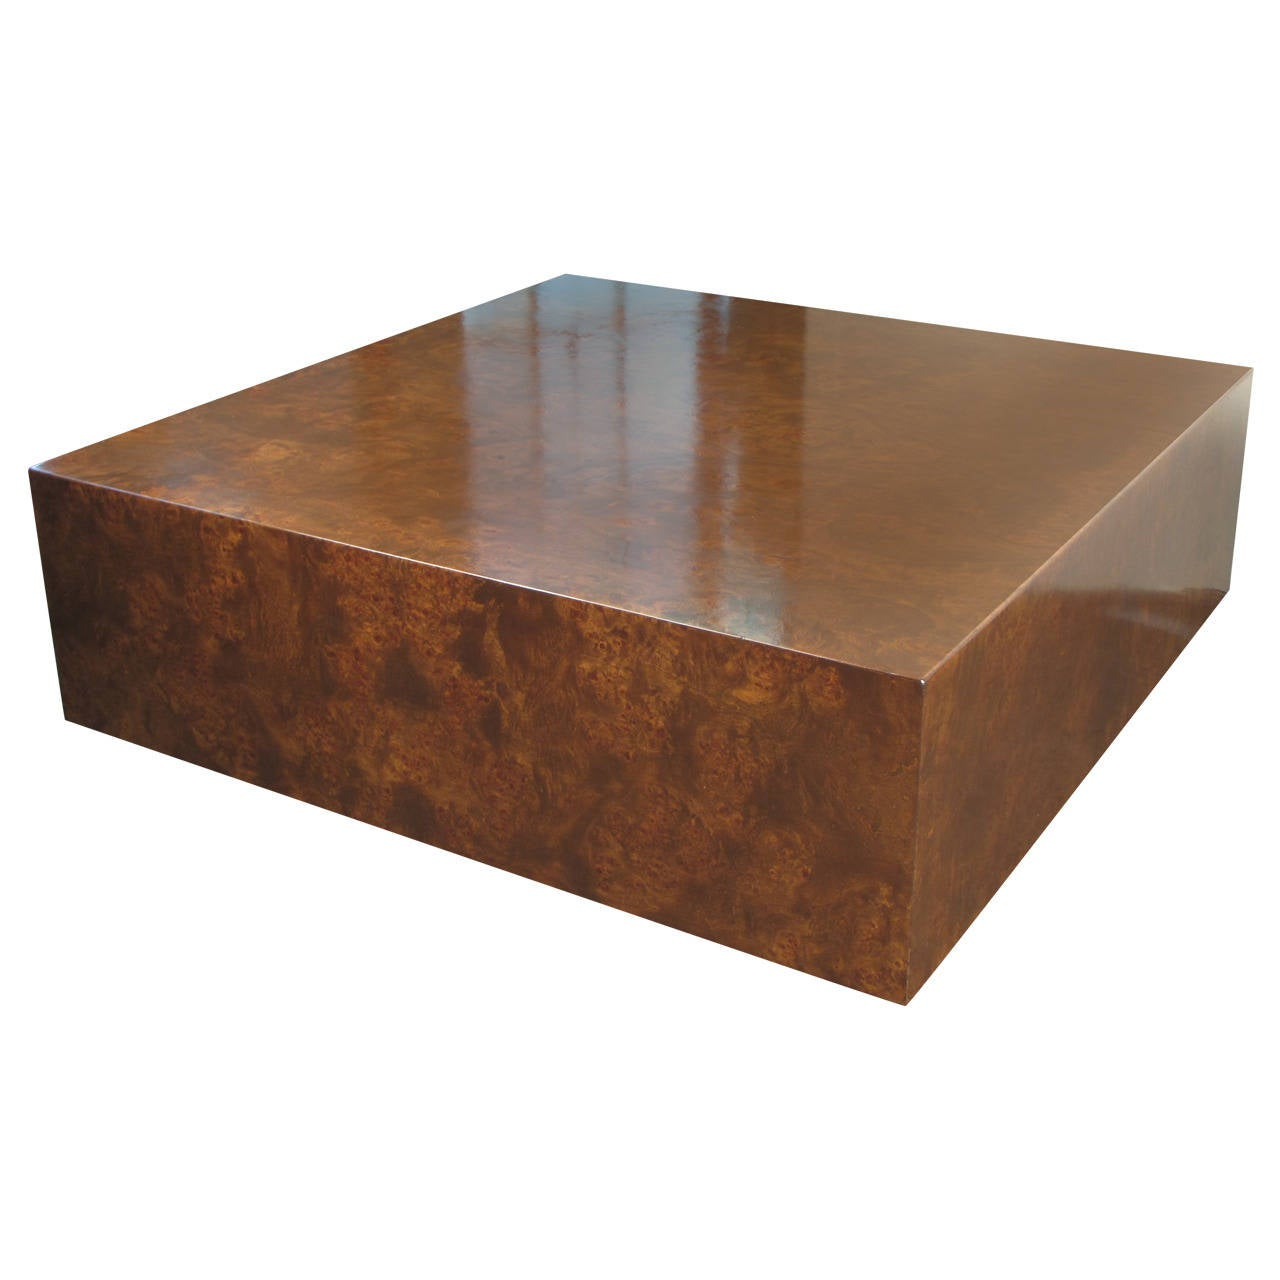 Burled wood cube coffee table by milo baughman for thayer for Wood cube coffee table set